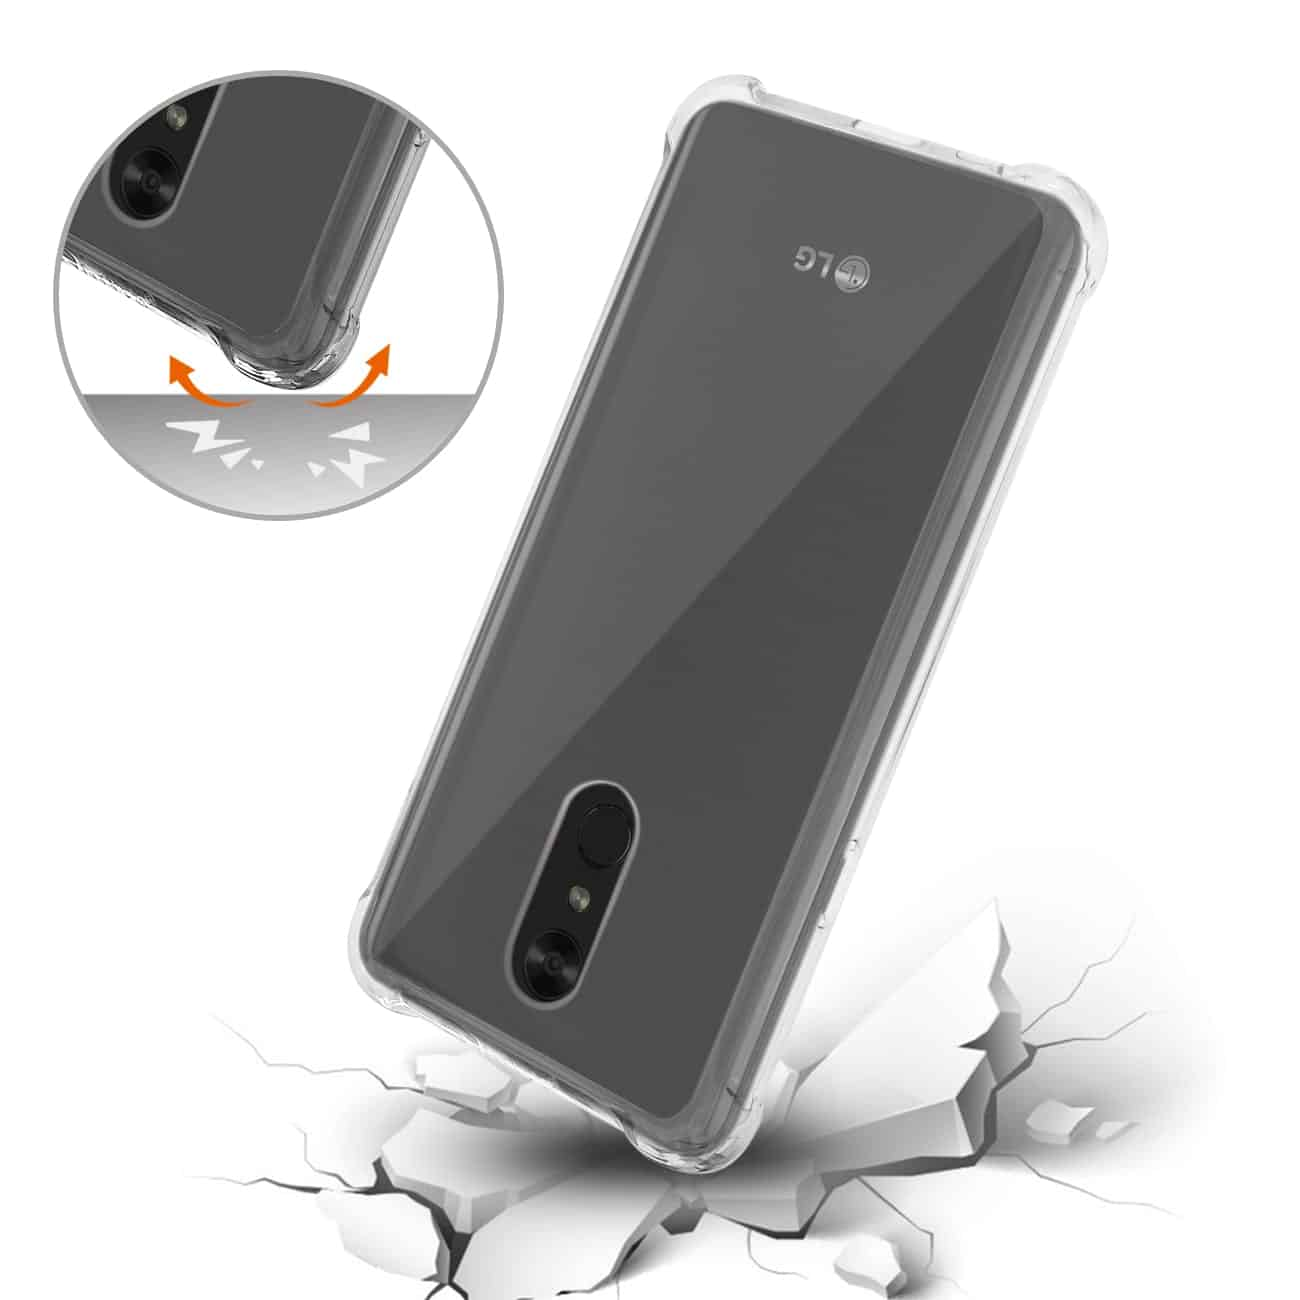 LG Stylo 4 Clear Bumper Case With Air Cushion Protection In Clear Black